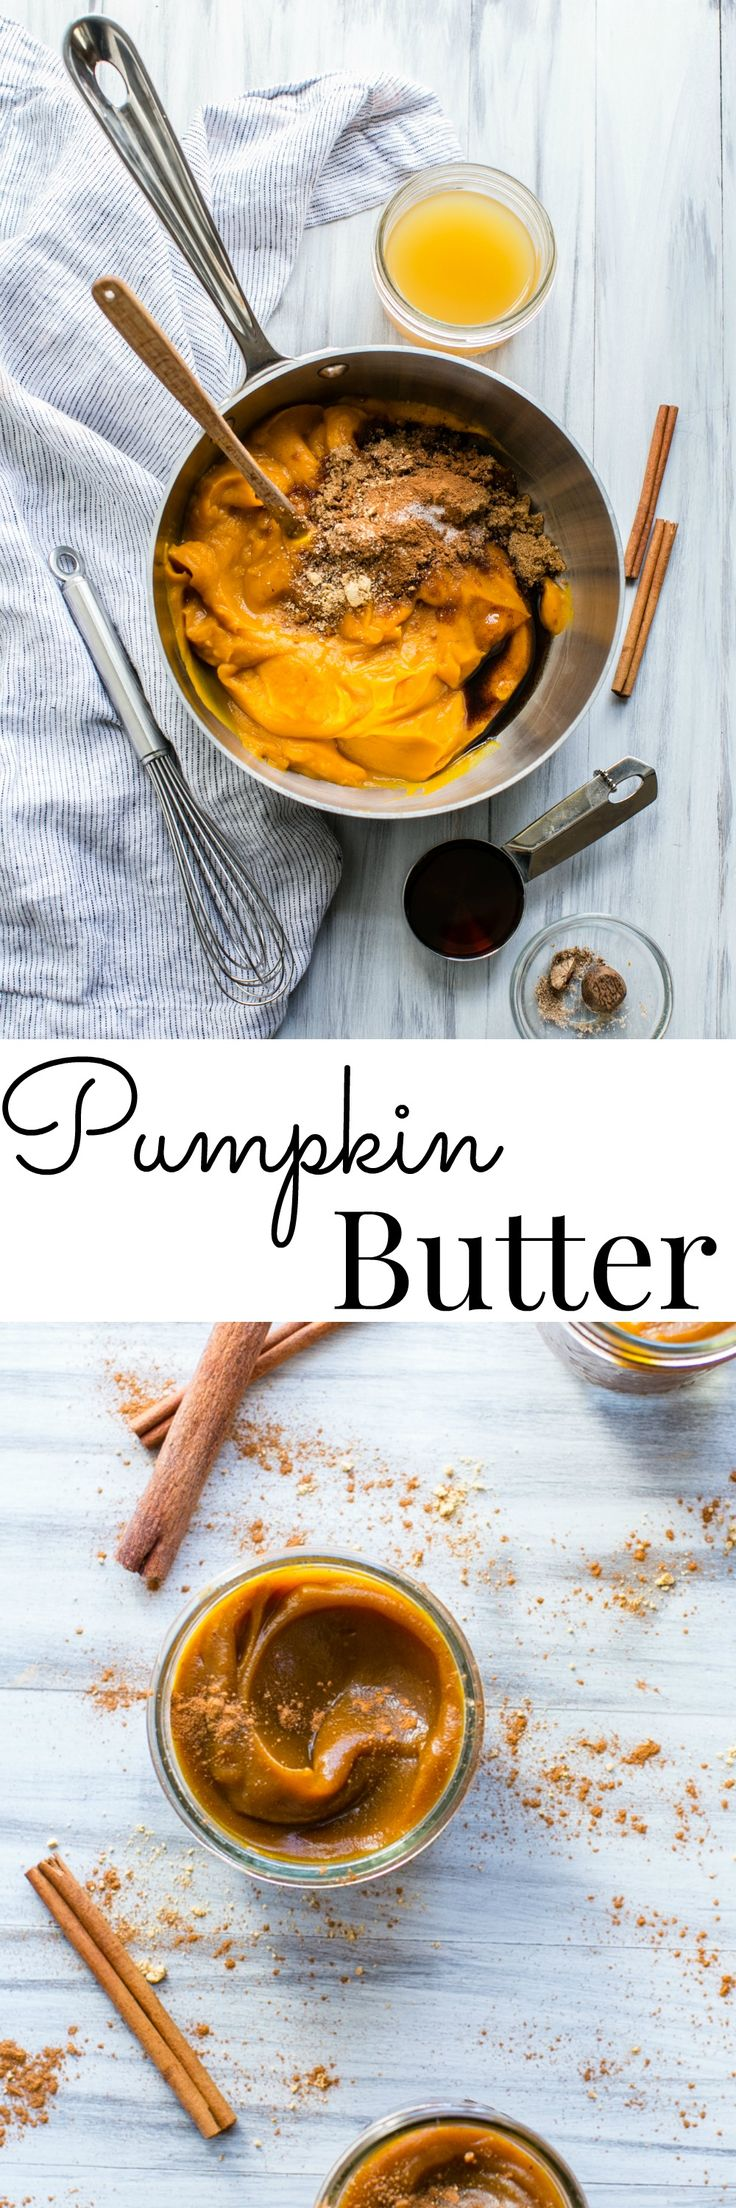 Slather it on biscuits, toast, waffles, eat it with a spoon or swirl it into oatmeal. Freezer friendly and makes a generous gift. Pumpkin Butter | Vegan + Gluten | Vanilla And Bean